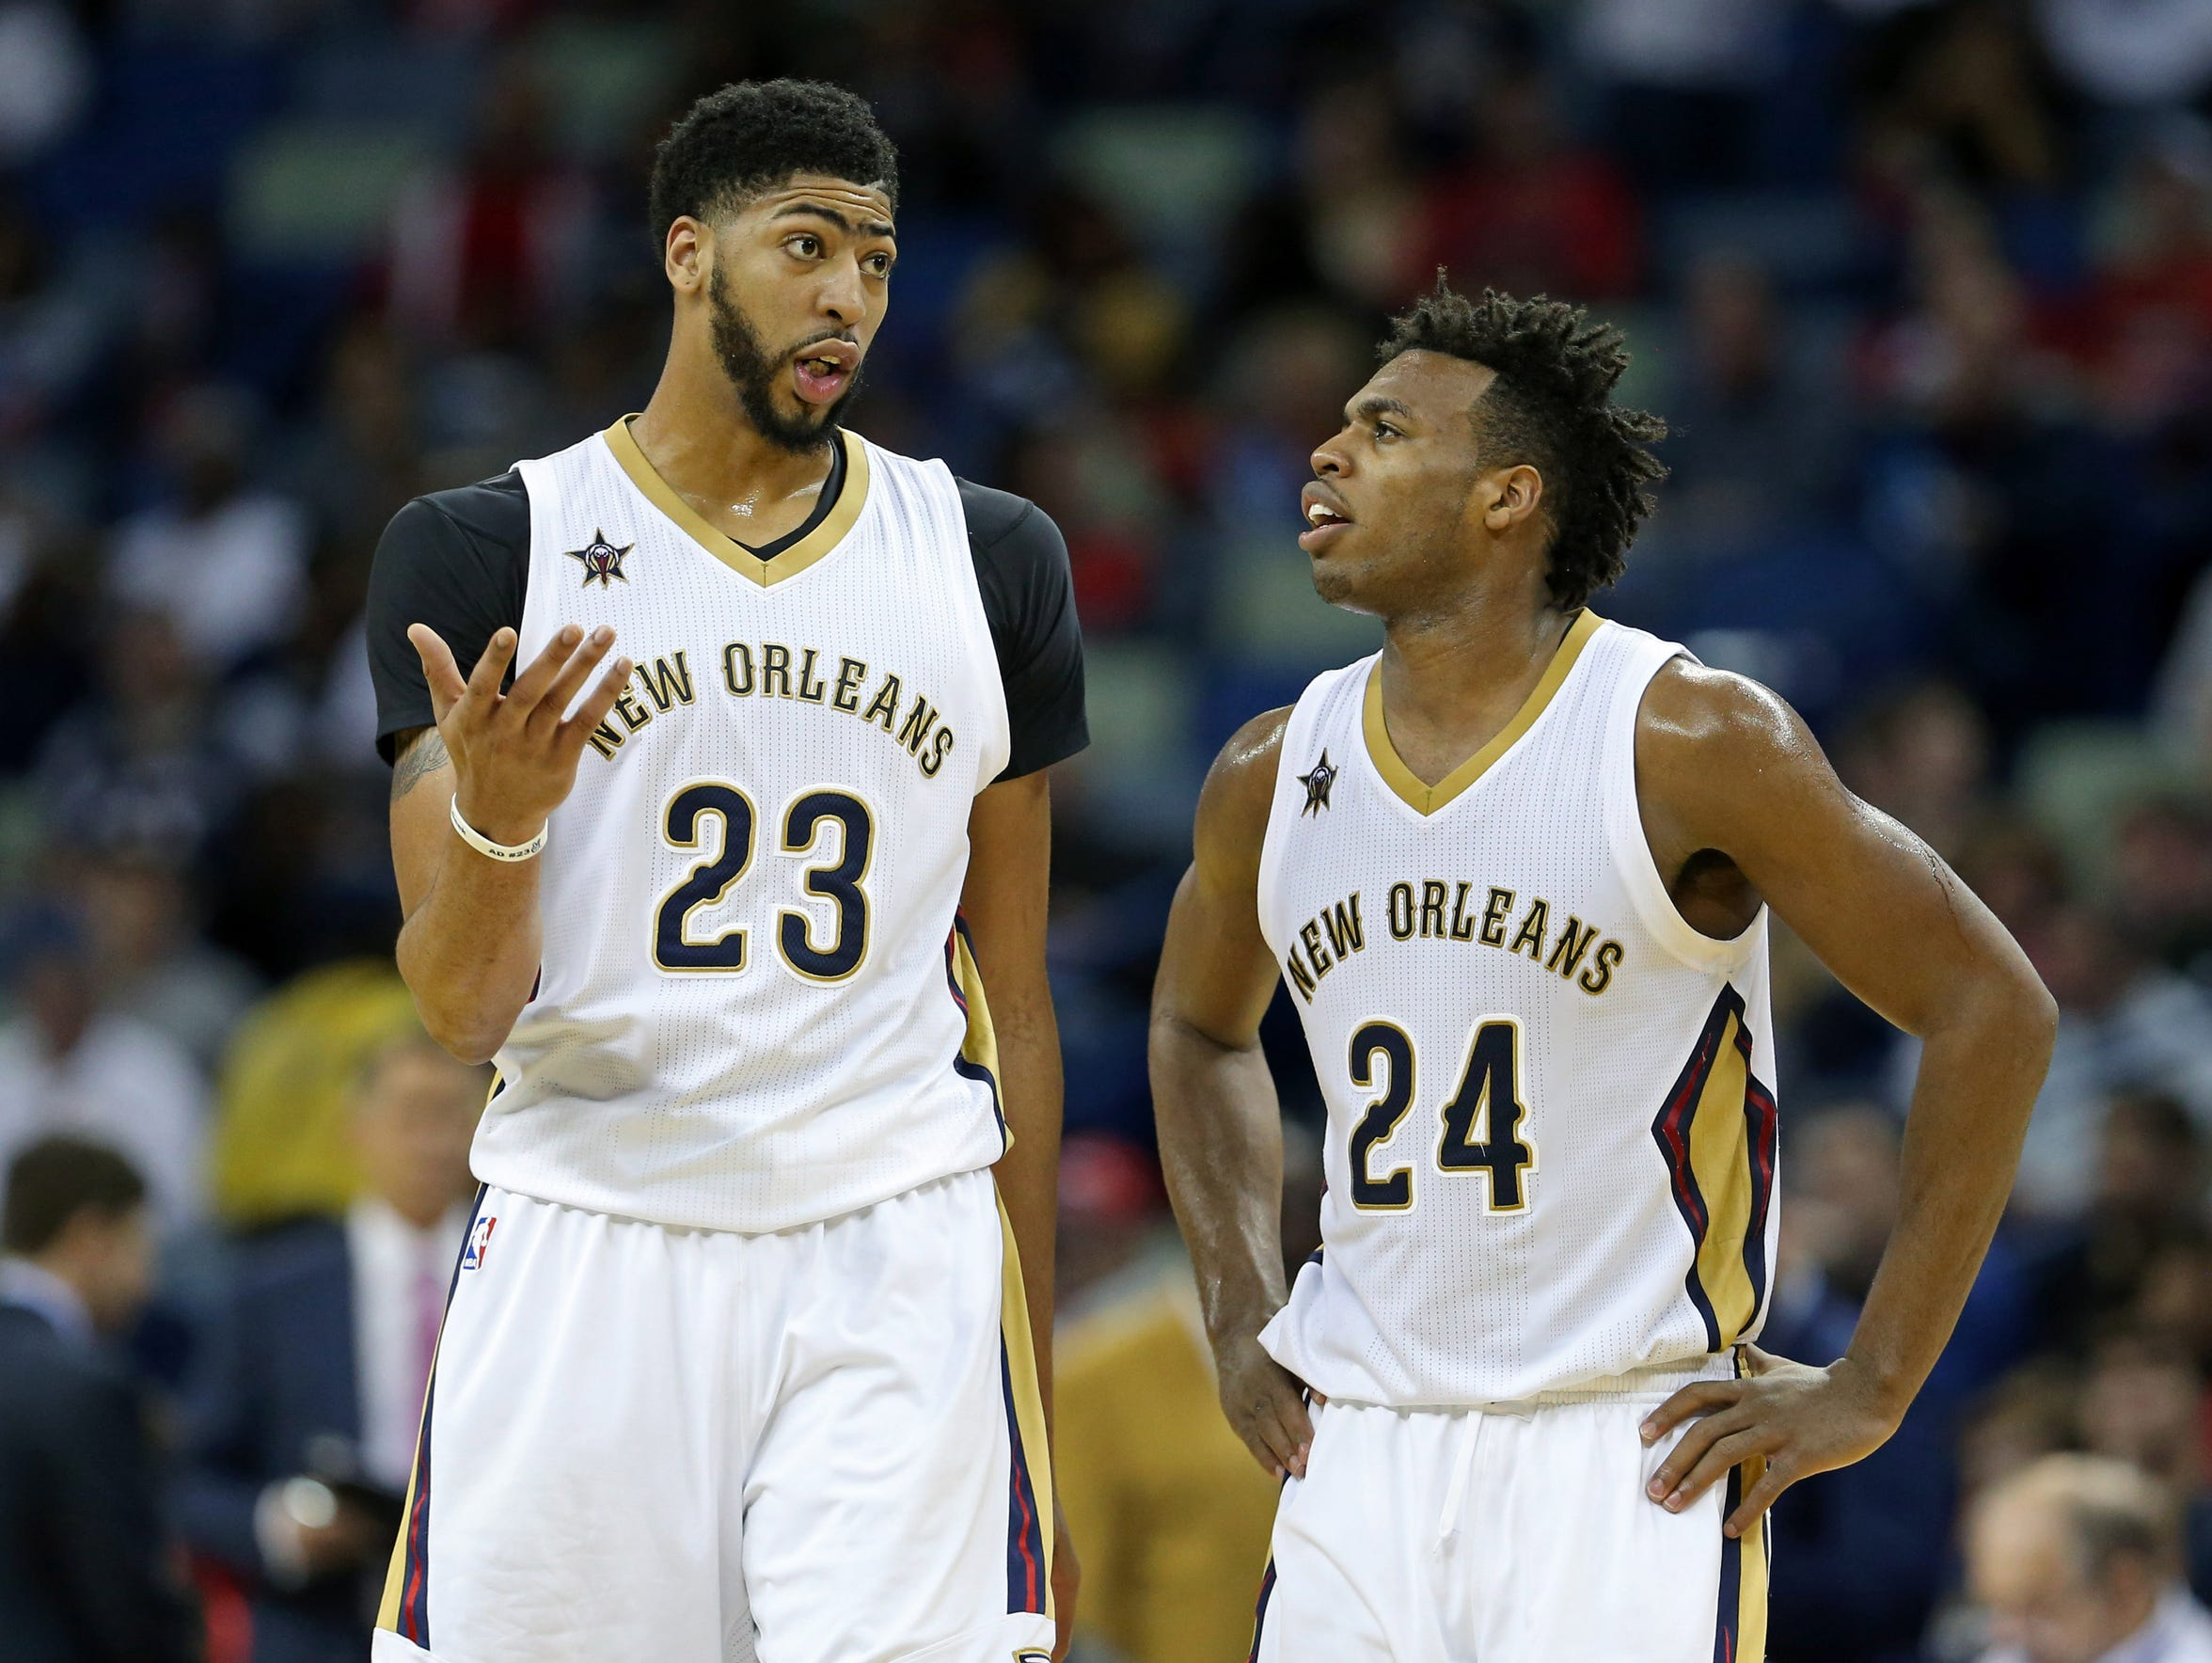 The New Orleans Pelicans' Anthony Davis, left, and